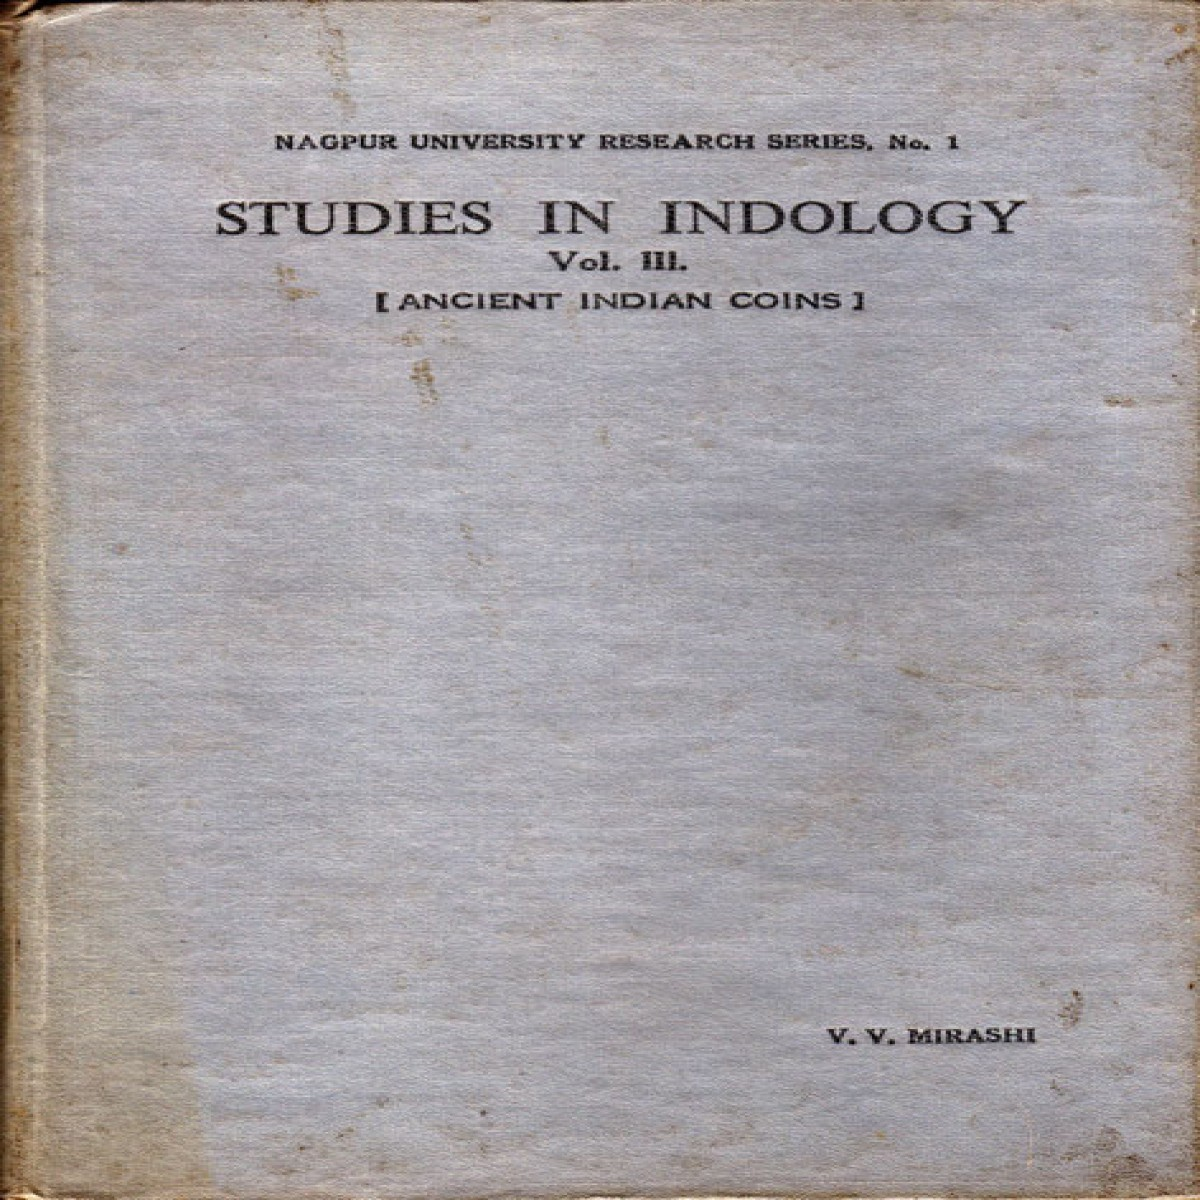 Studies in Indology, Vol. III - Ancient Indian Coins